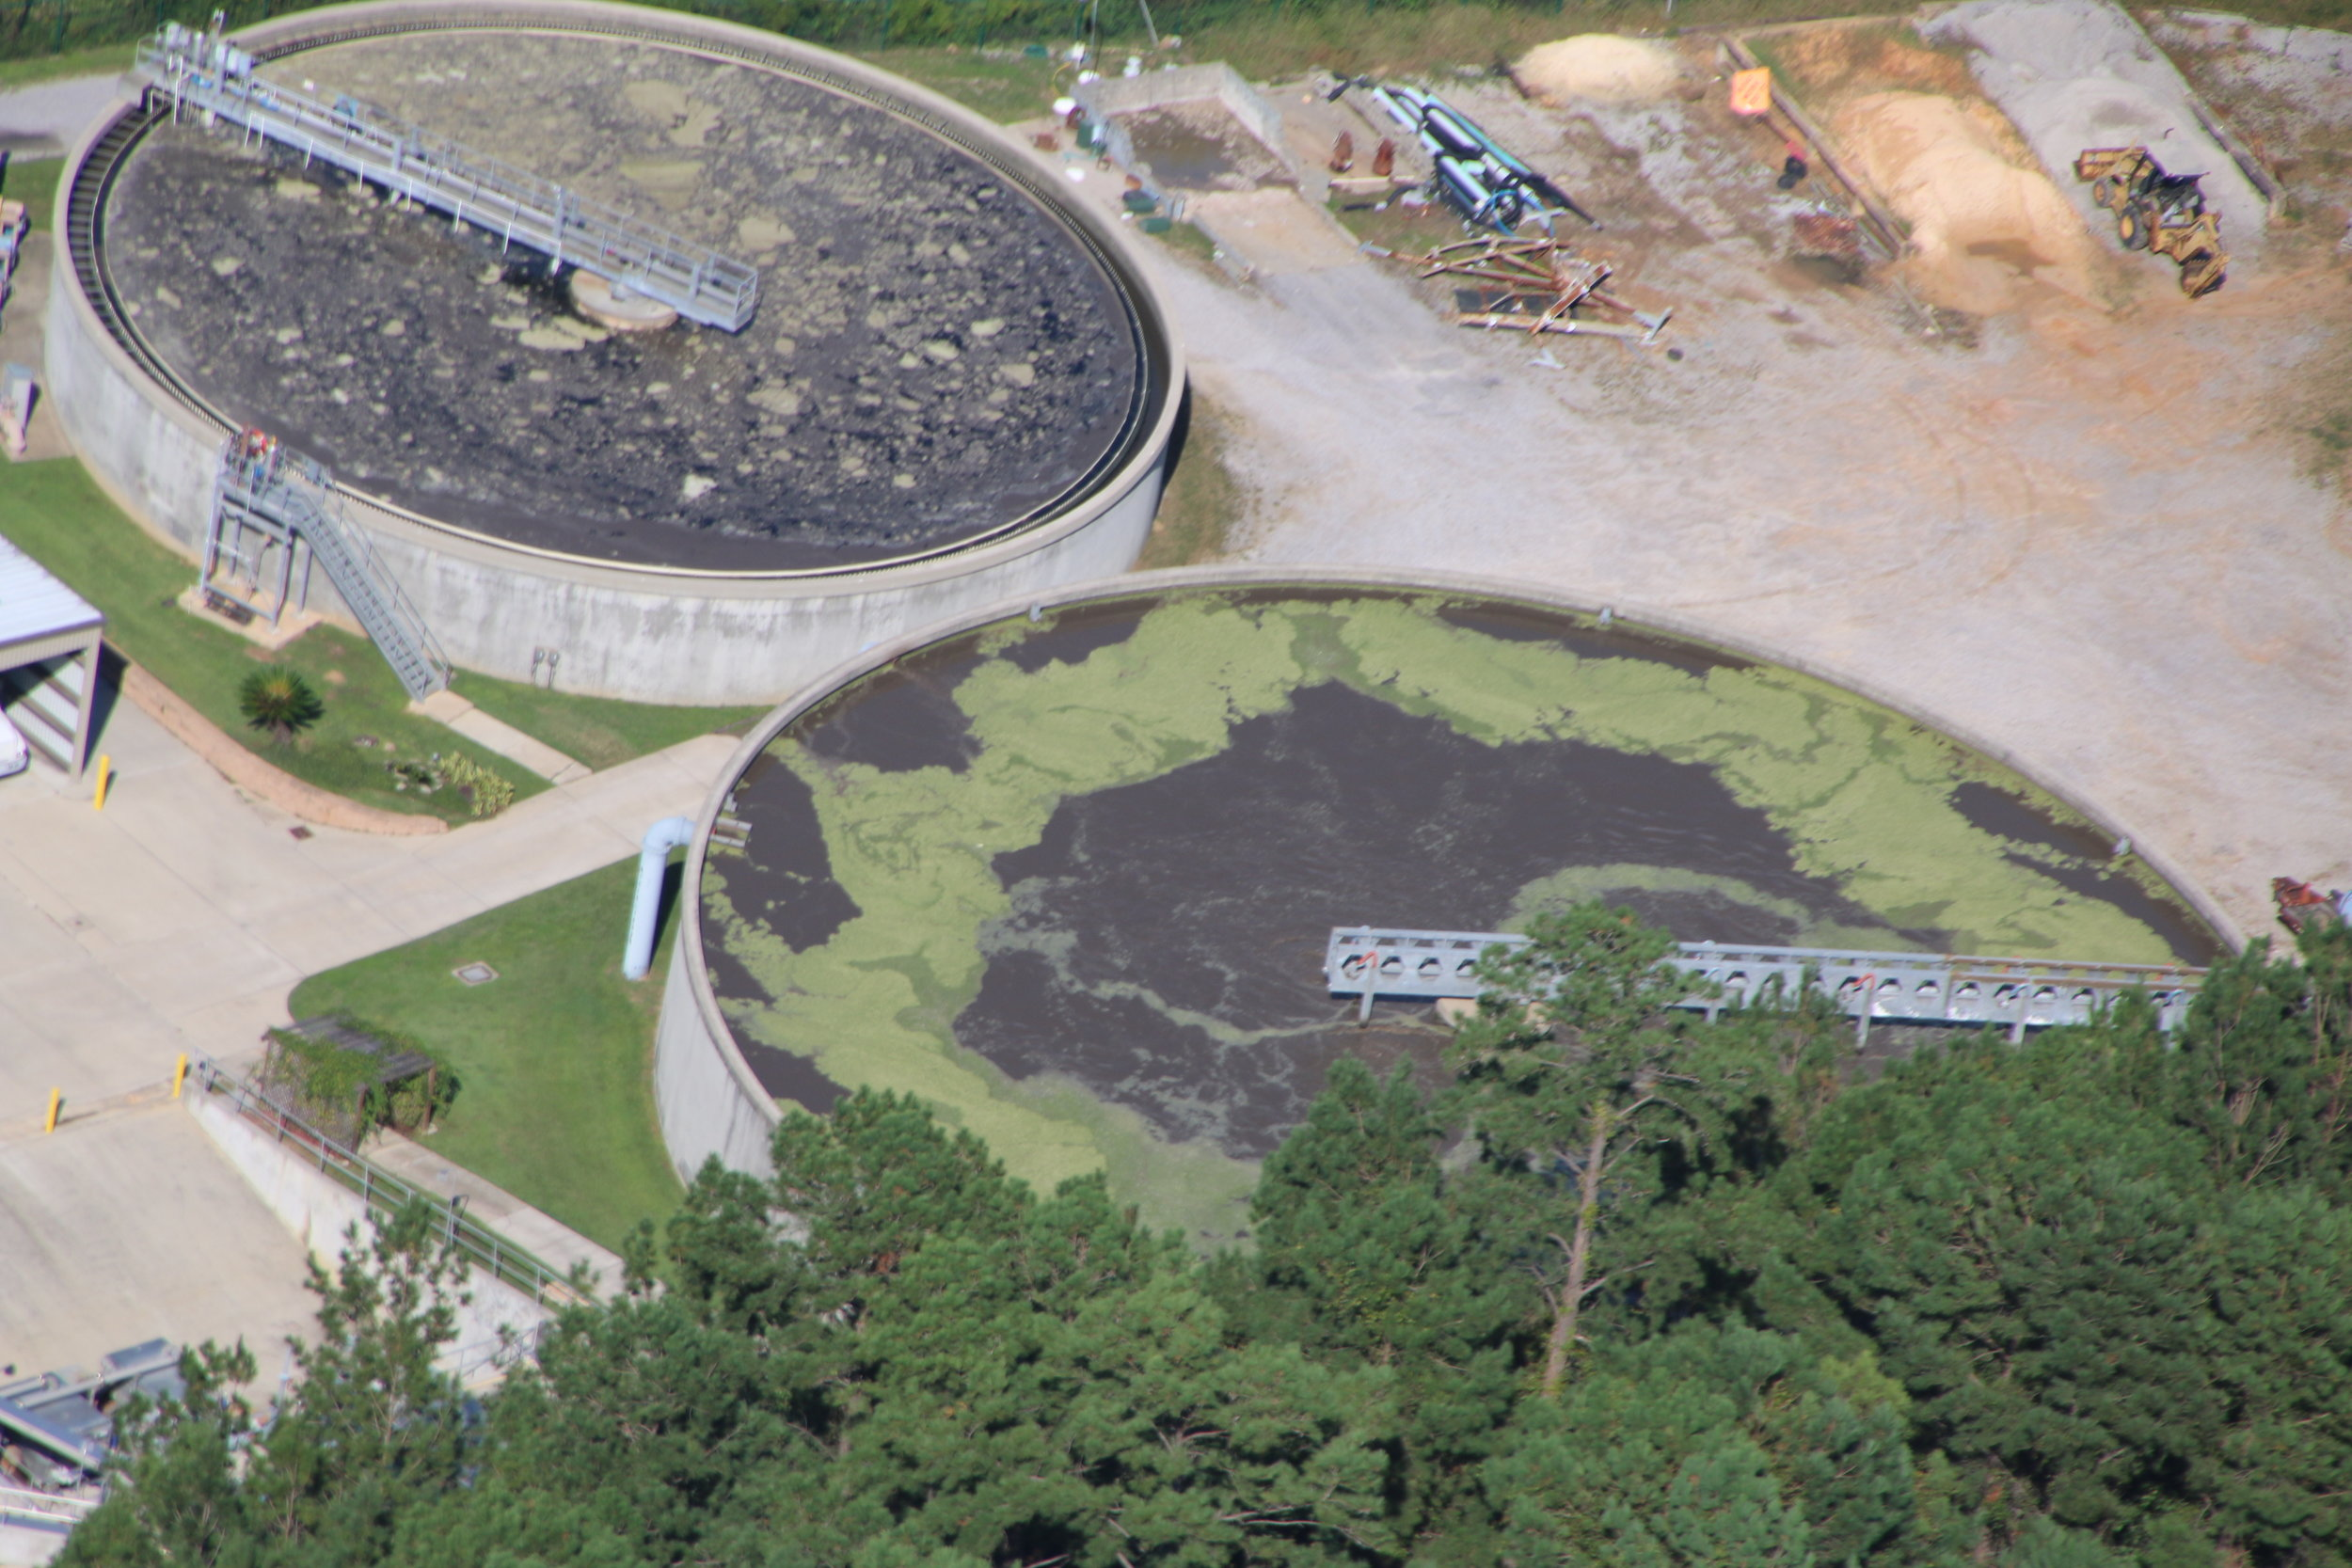 Sludge can be seen entirely covering Daphne Utilities' clarifier. This is a serious failure of the treatment system at the plant and is allowing sewage be discharged into Blakeley River and Mobile Bay with very little treatment.